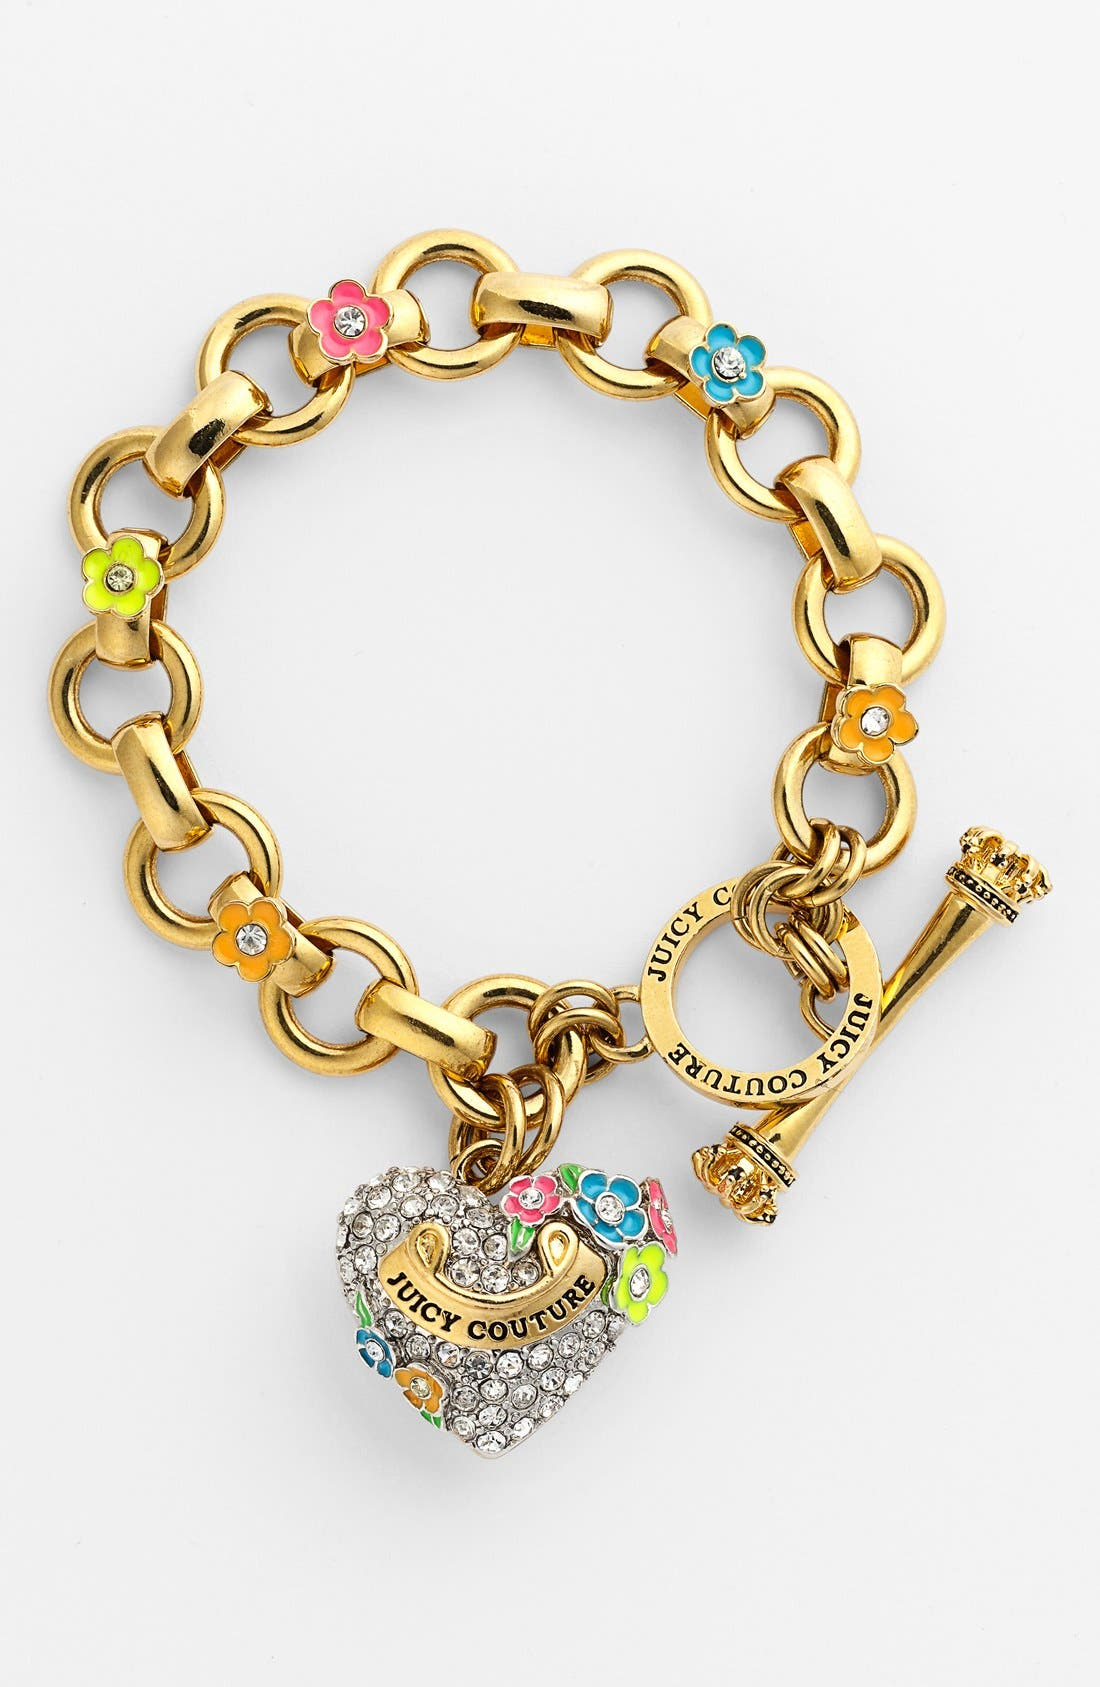 Alternate Image 1 Selected - Juicy Couture 'Blooming Hearts' Charm Bracelet